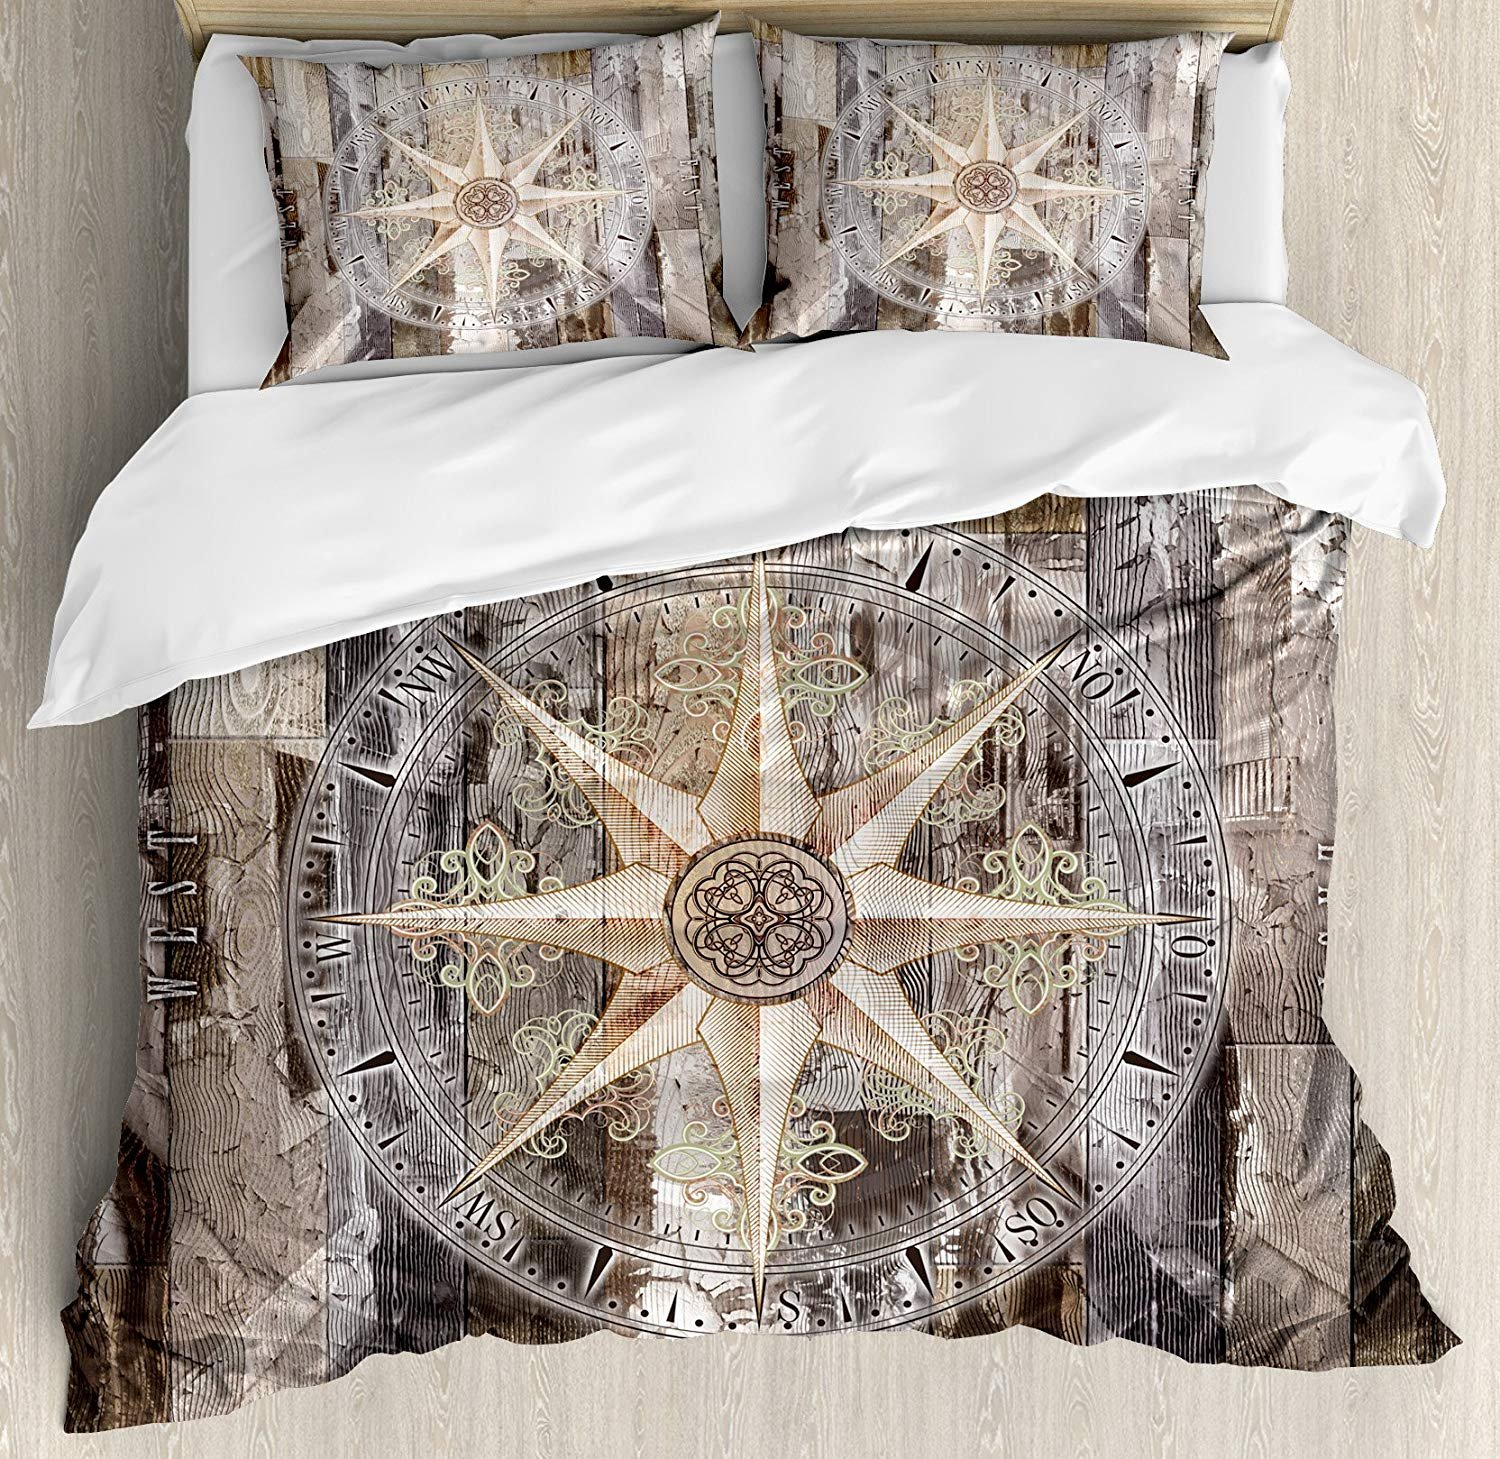 Marine Life Twin Duvet Cover Sets 4 Piece Bedding Set Bedspread with 2 Pillow Sham, Flat Sheet for Adult/Kids/Teens, Navy Sea Life Yacht Theme Colored Wood Backdrop Rudder like Compass Marine Image